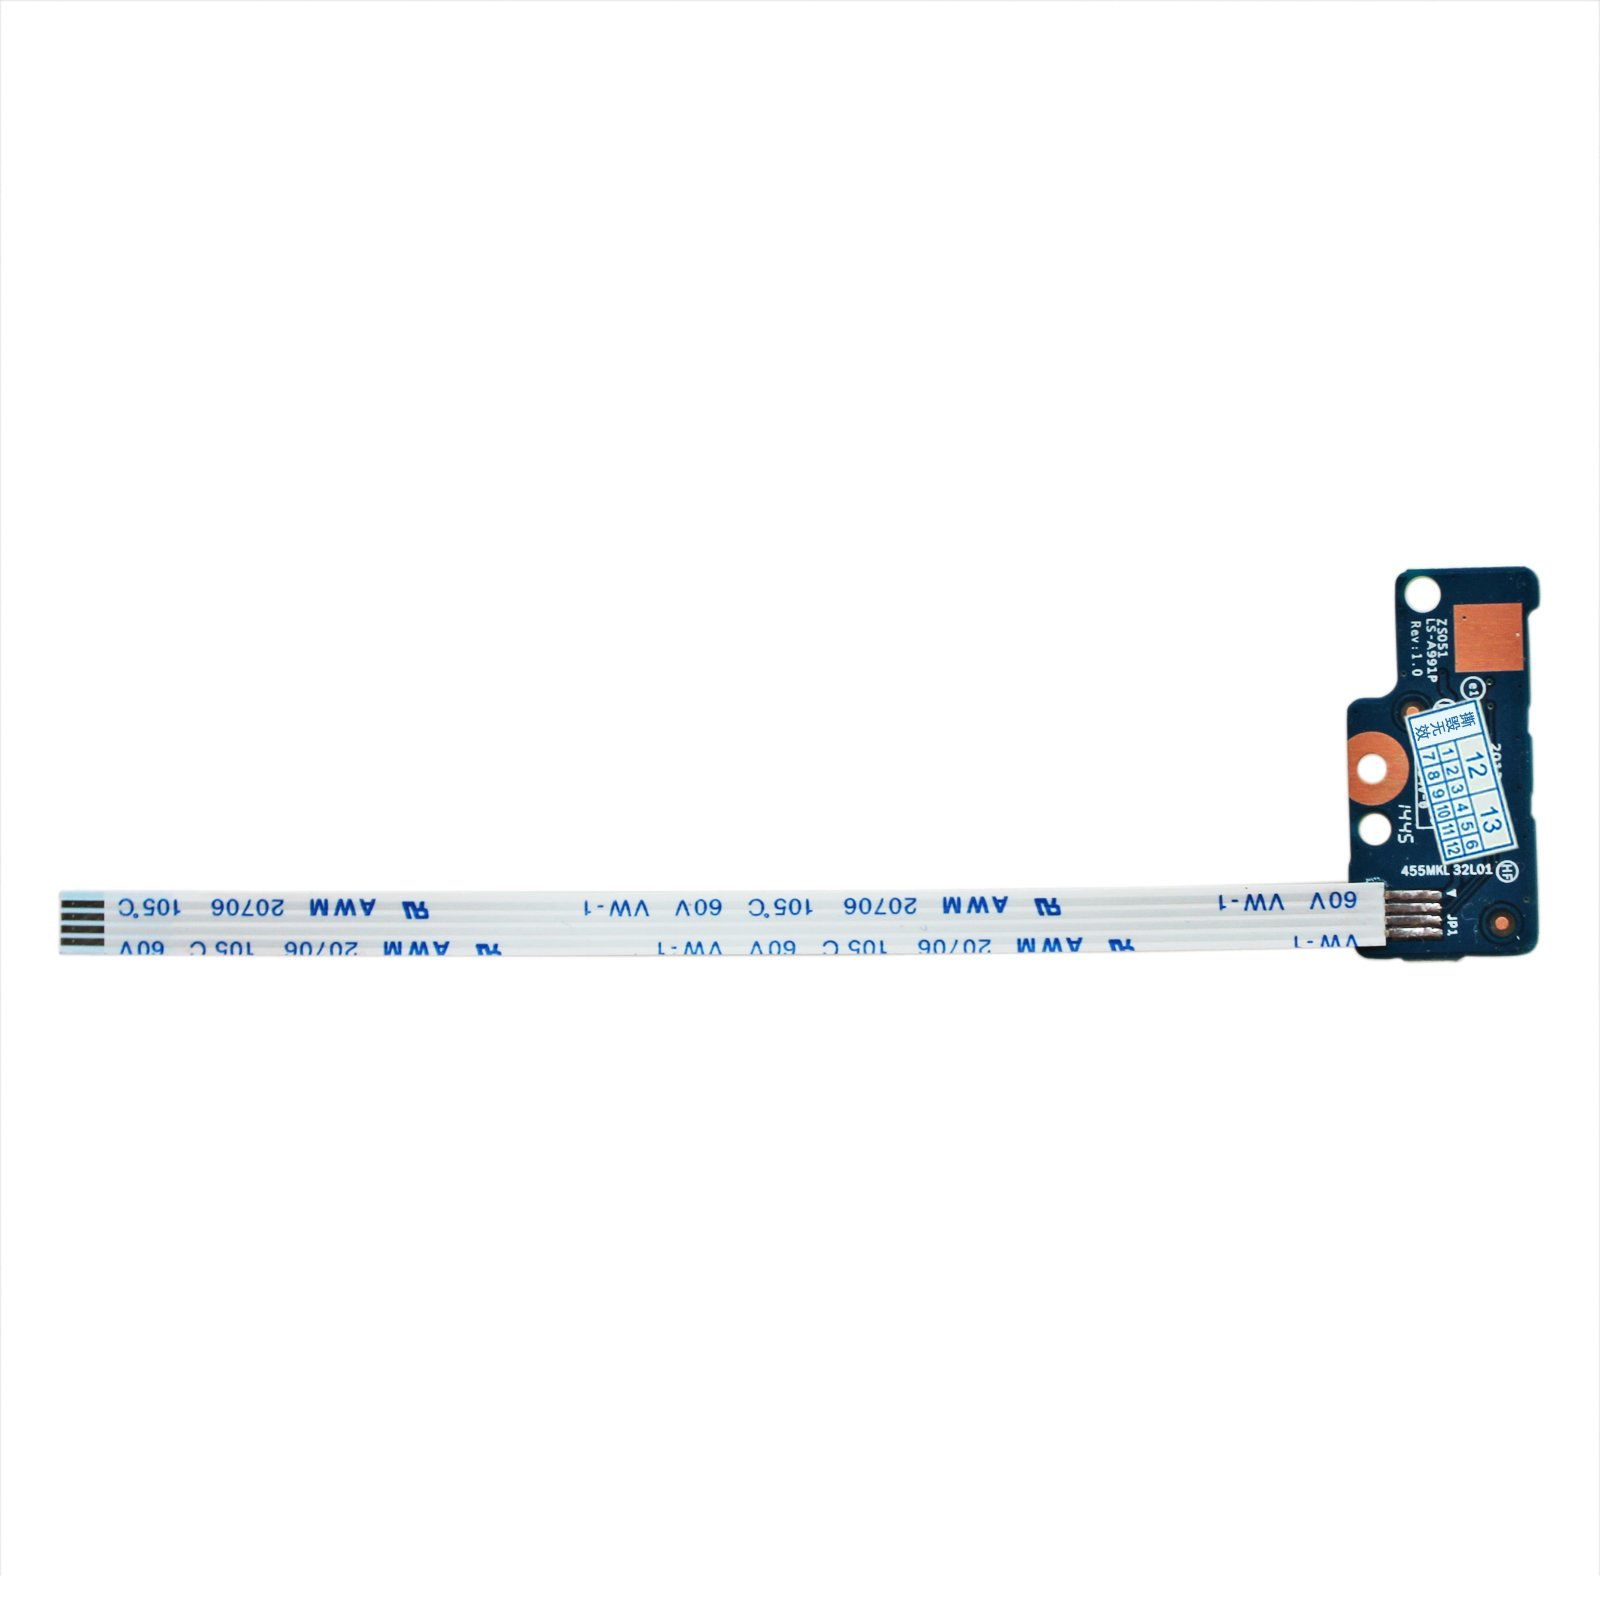 GinTai Power Button Board w/ Cable Replacement For HP 15-r138ca 15-r174ca 15-r011dx 15-r029wm 15-r063nr 15-r181nr 15-r052nr 15-R030WM 15-g071nr 15-g072nr 15-G 15-R 749650-001 LS-A991P 250 G3 255 G3